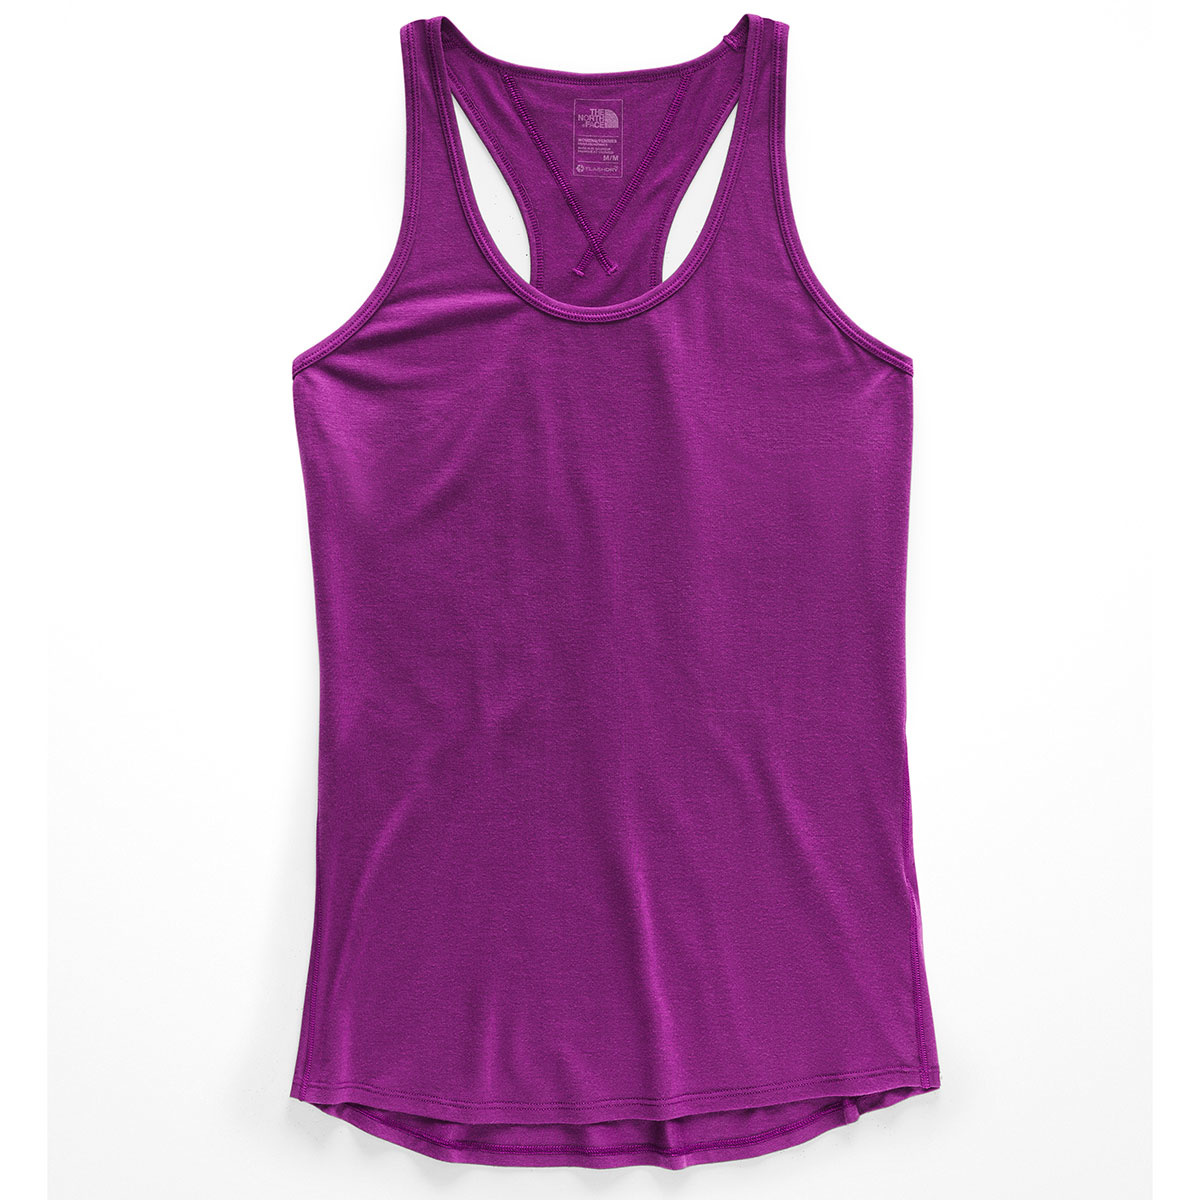 THE NORTH FACE The North Face Women's Workout Racerback Tank